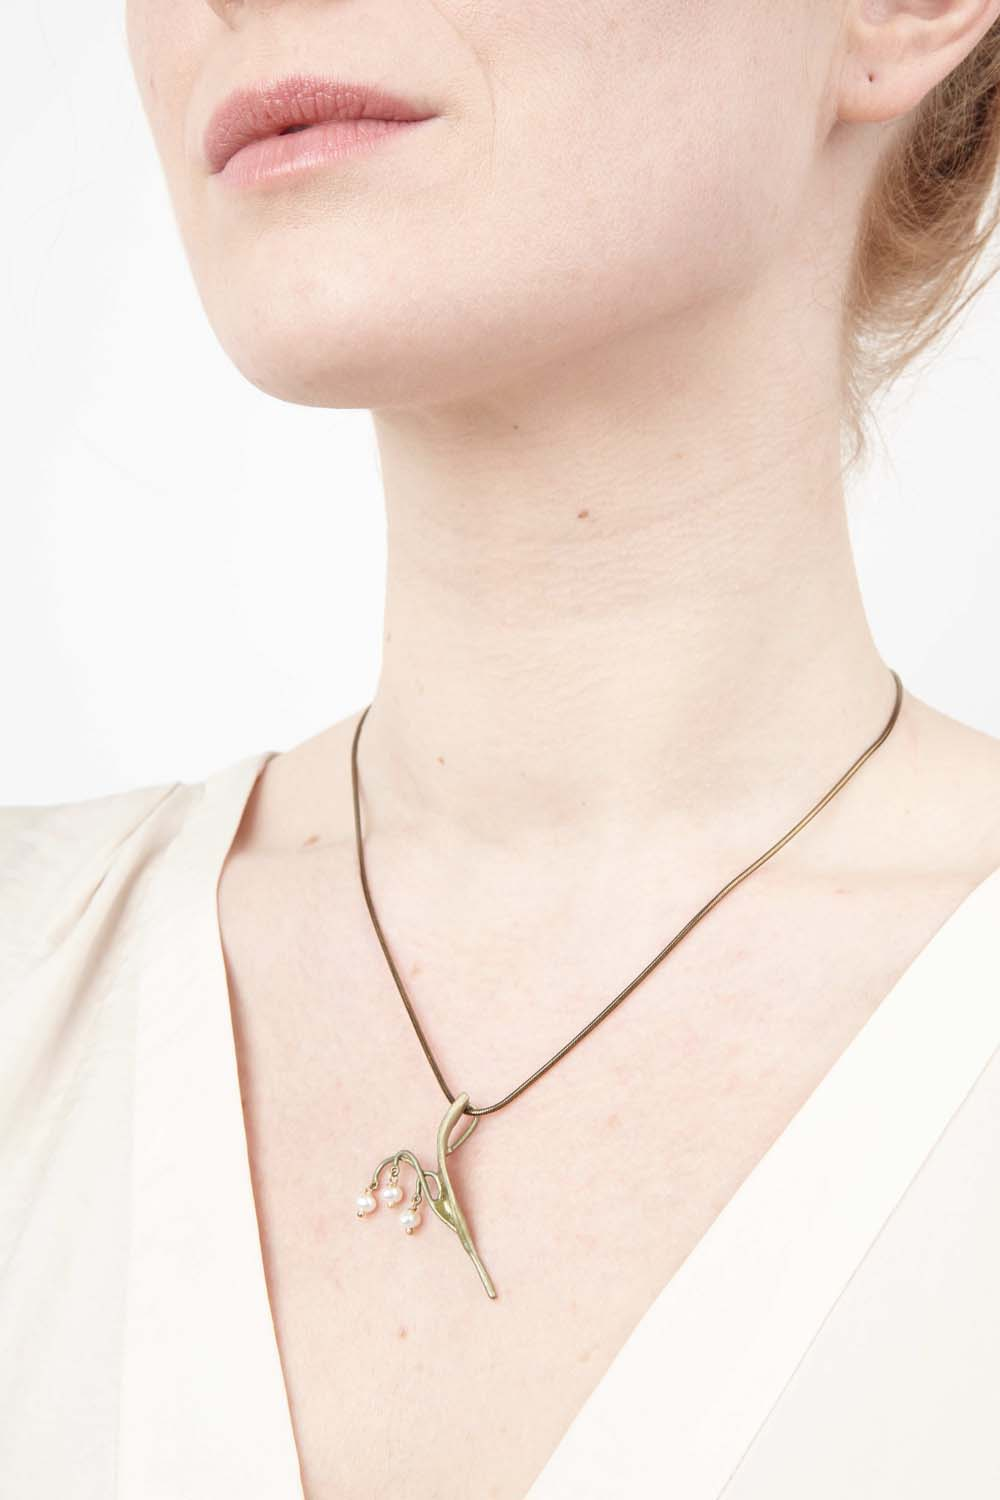 Lily of the Valley Pendant - Petite Flower